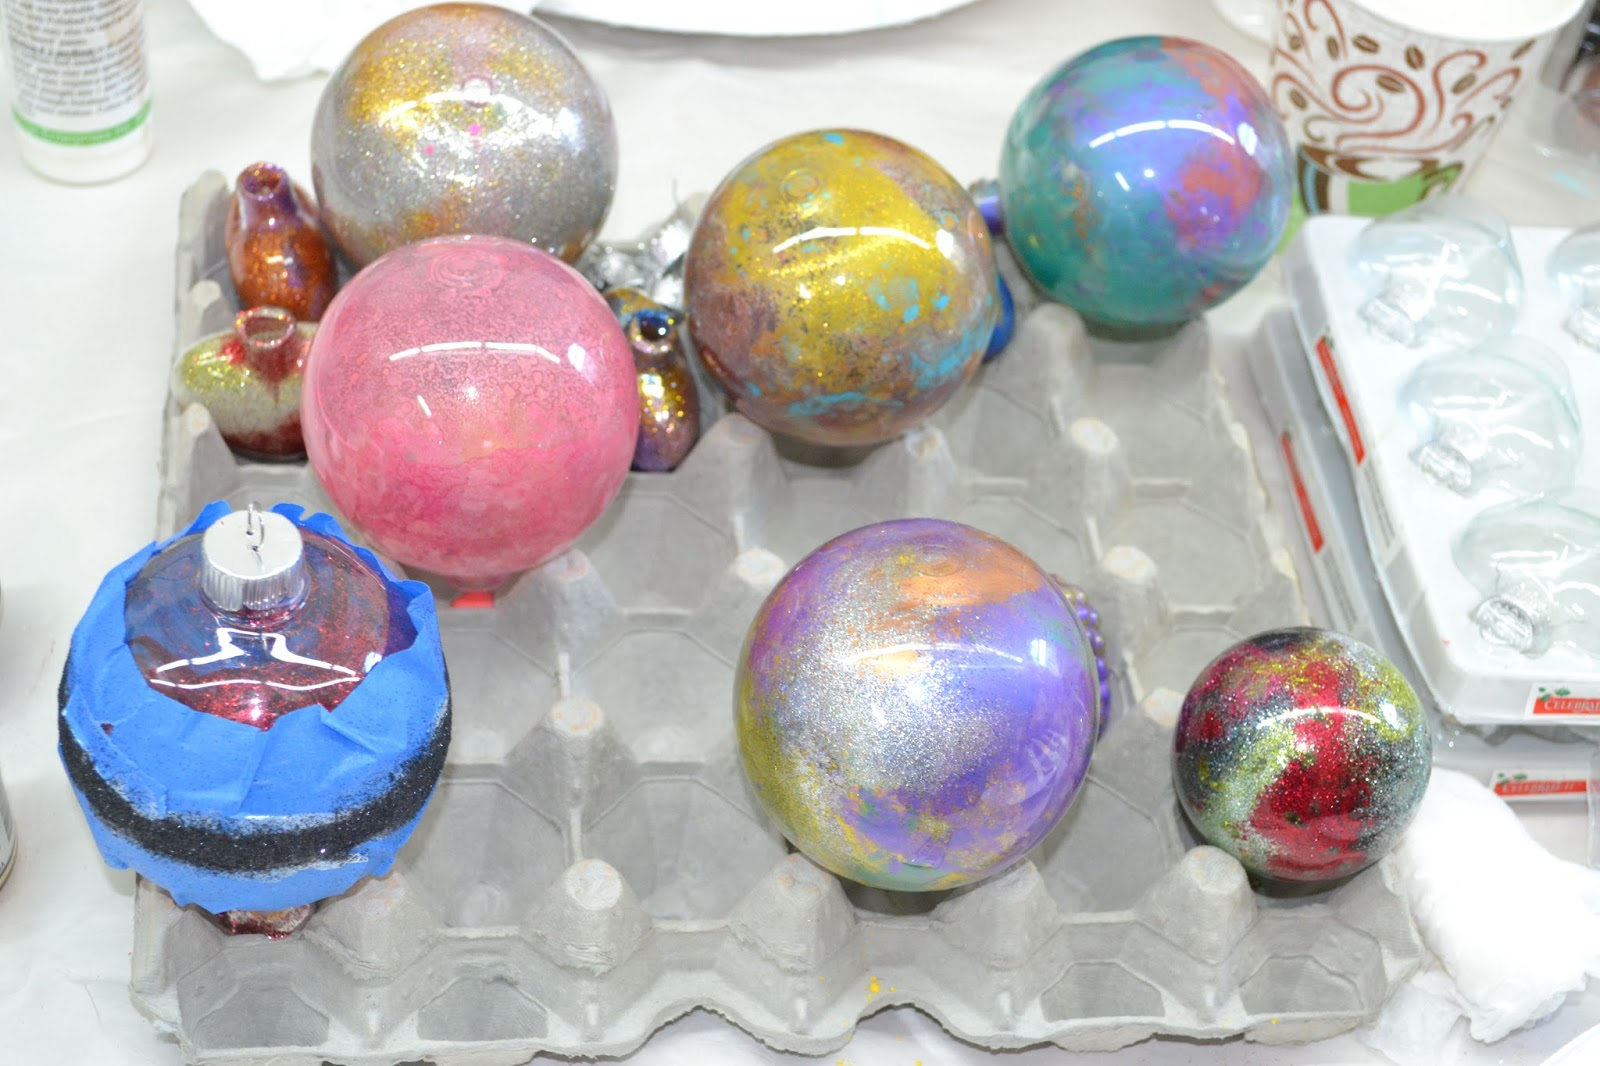 Ornaments And Swirl It Around And Then Add Glitter, Mica And Various  Materials  She Even Showed Us How To Add Floor Wax  Yes Floor Wax To The  Ones